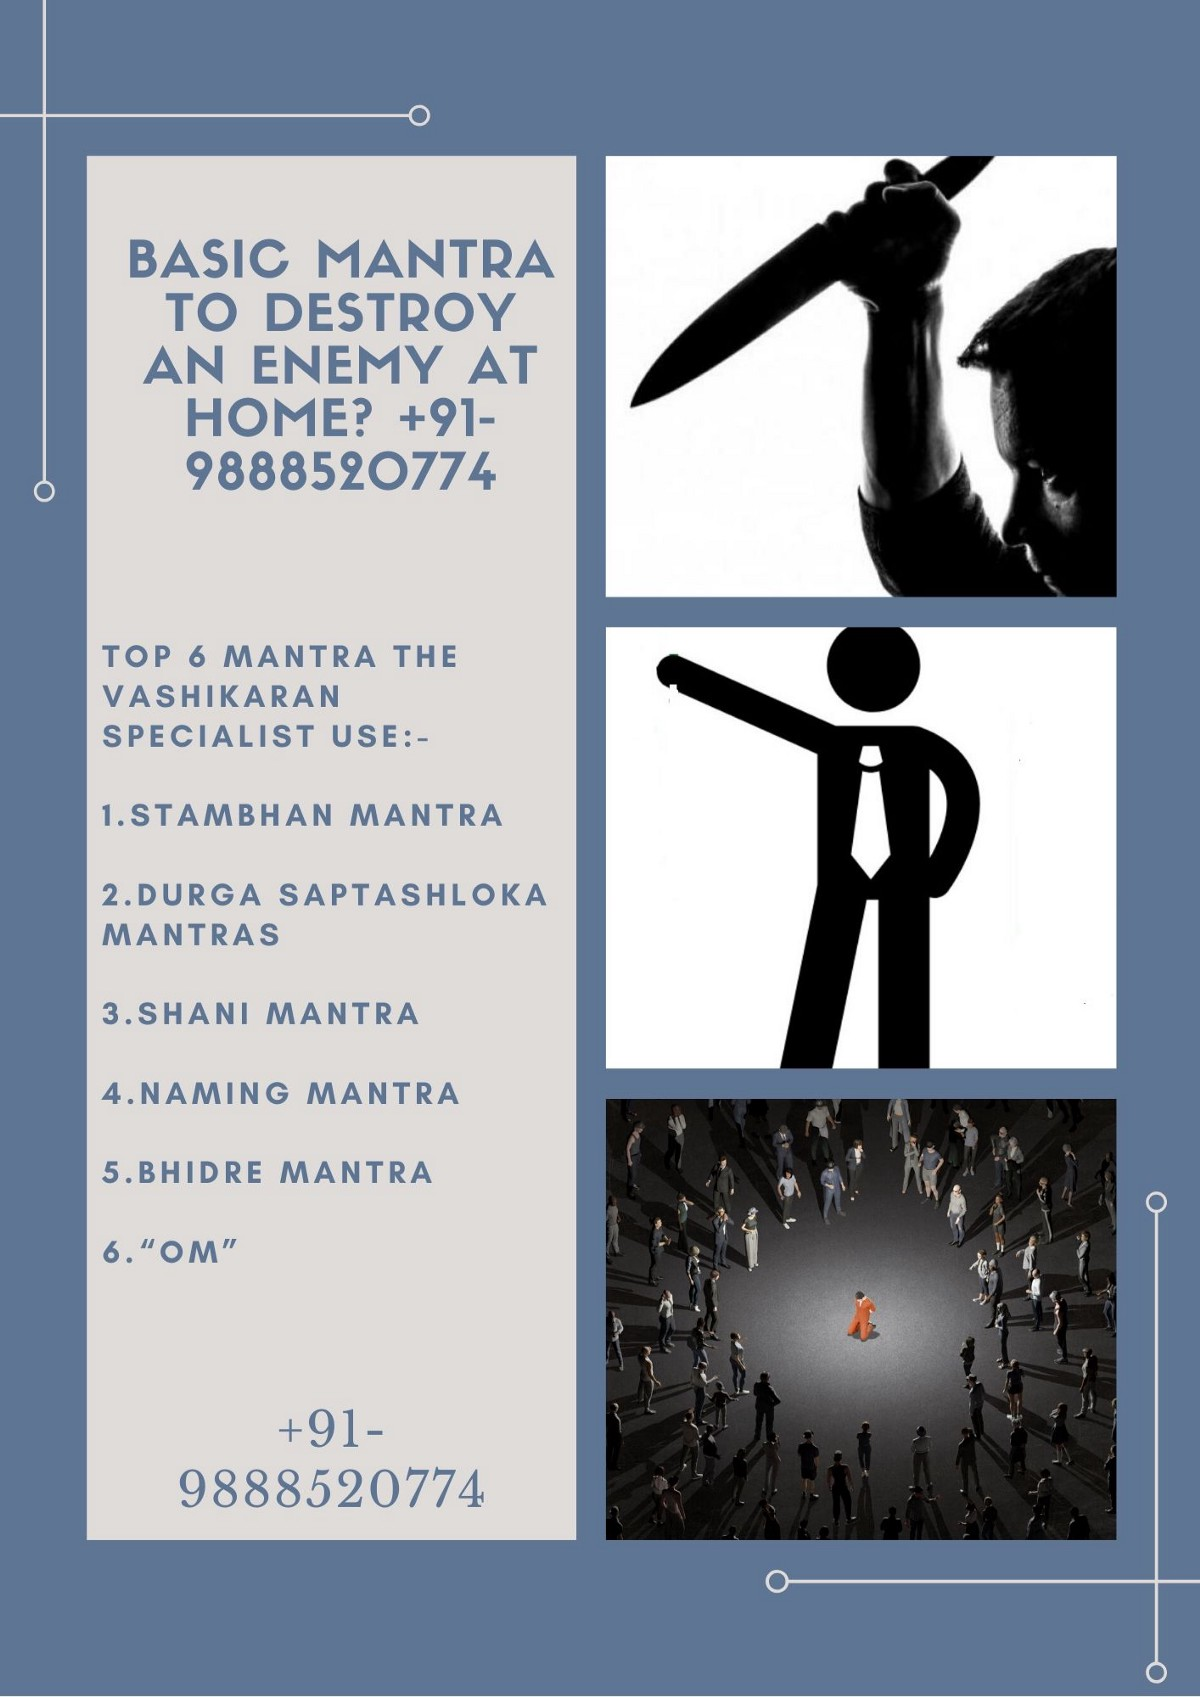 Basic Mantra To Destroy An Enemy At Home